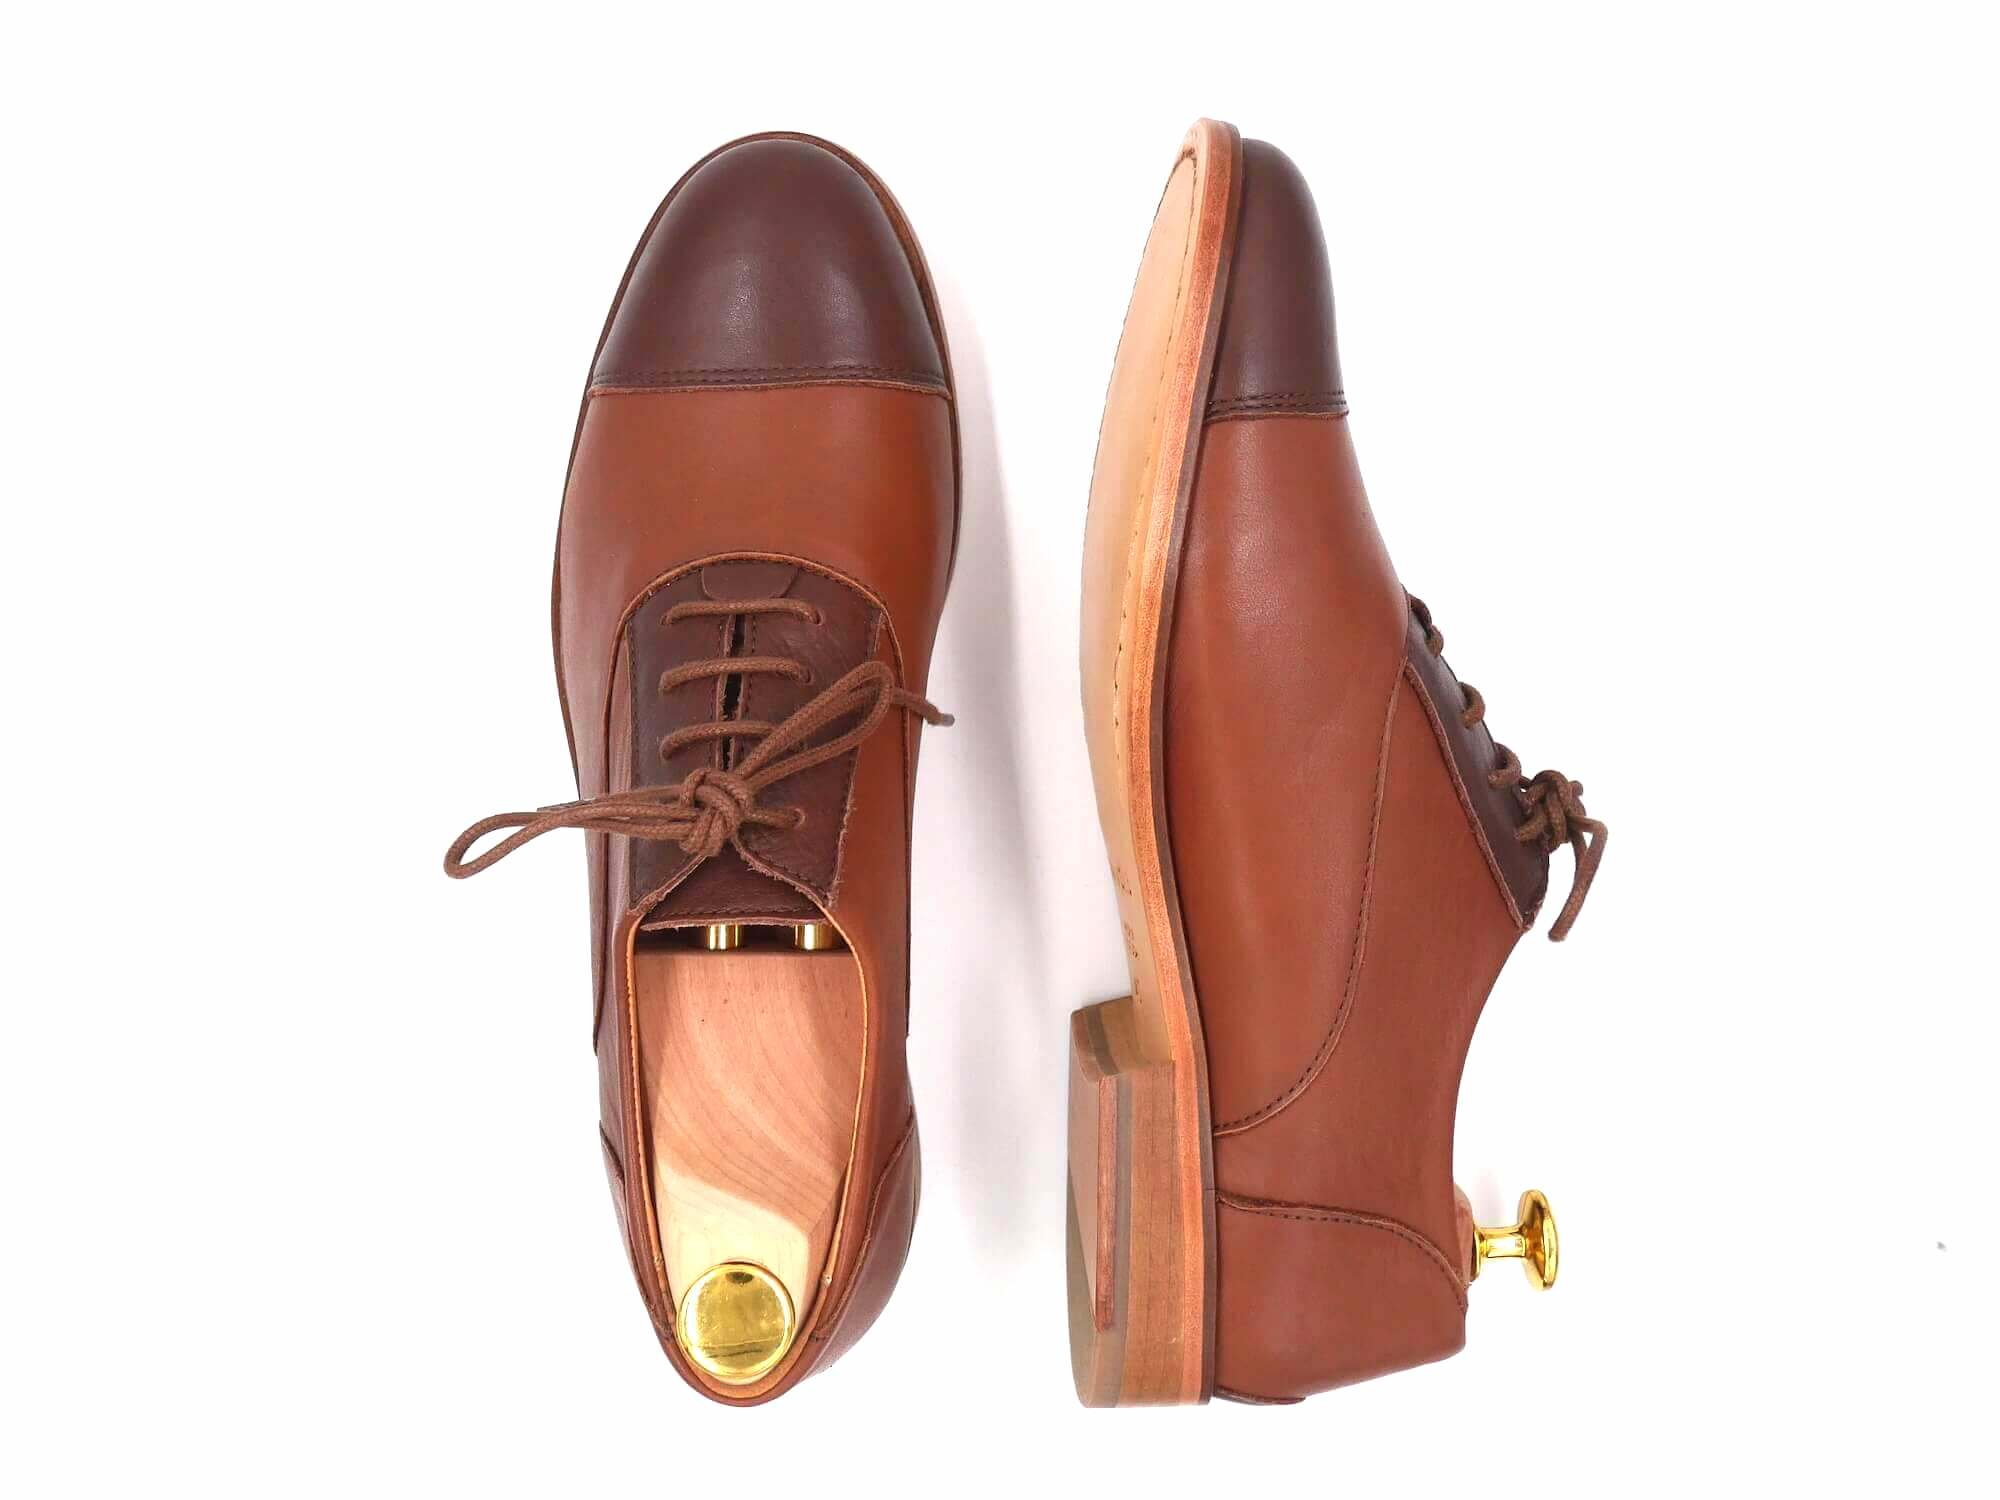 Photo Zoom Chestnut Derbies cuir marron et marron foncé